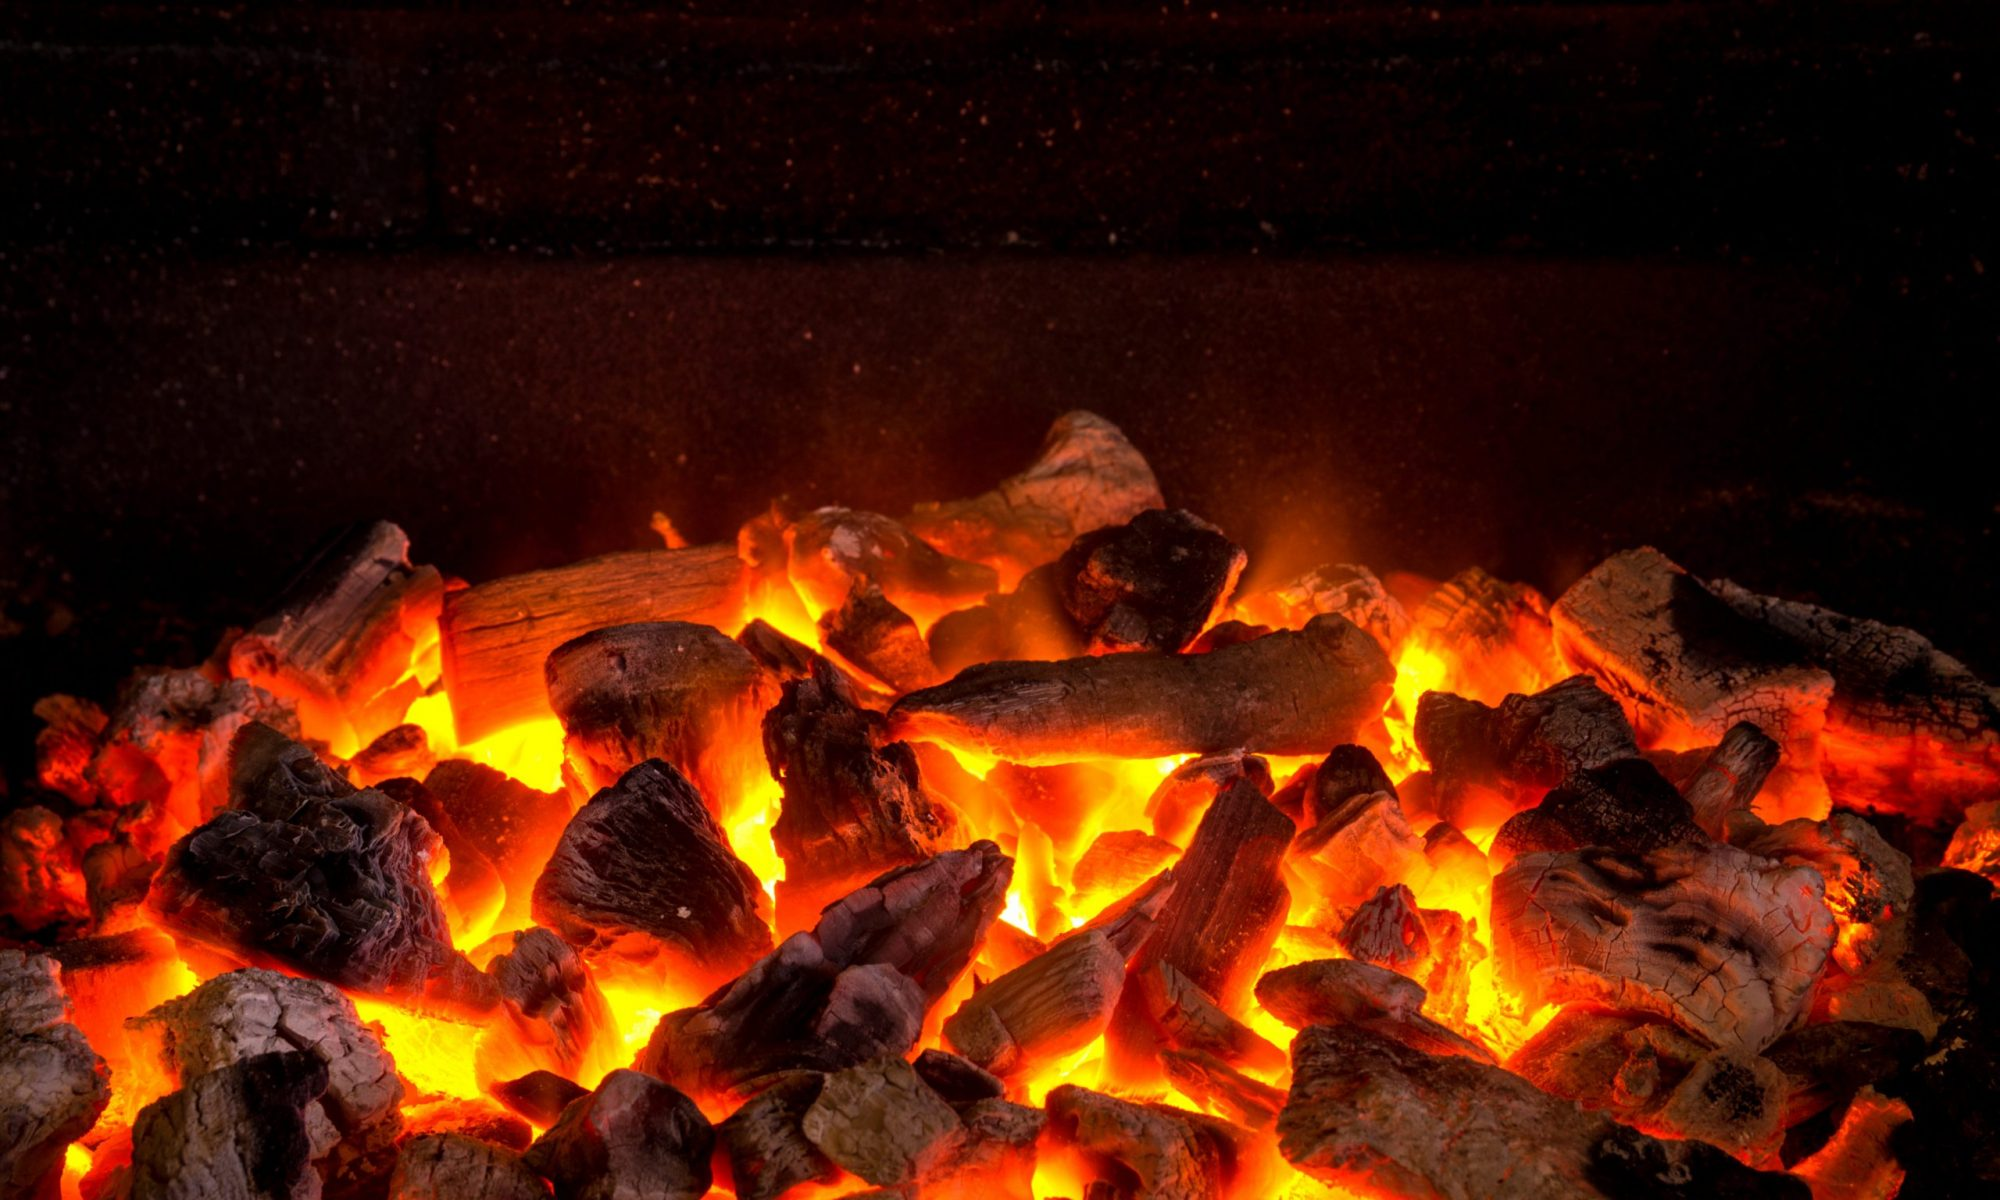 On the Coals